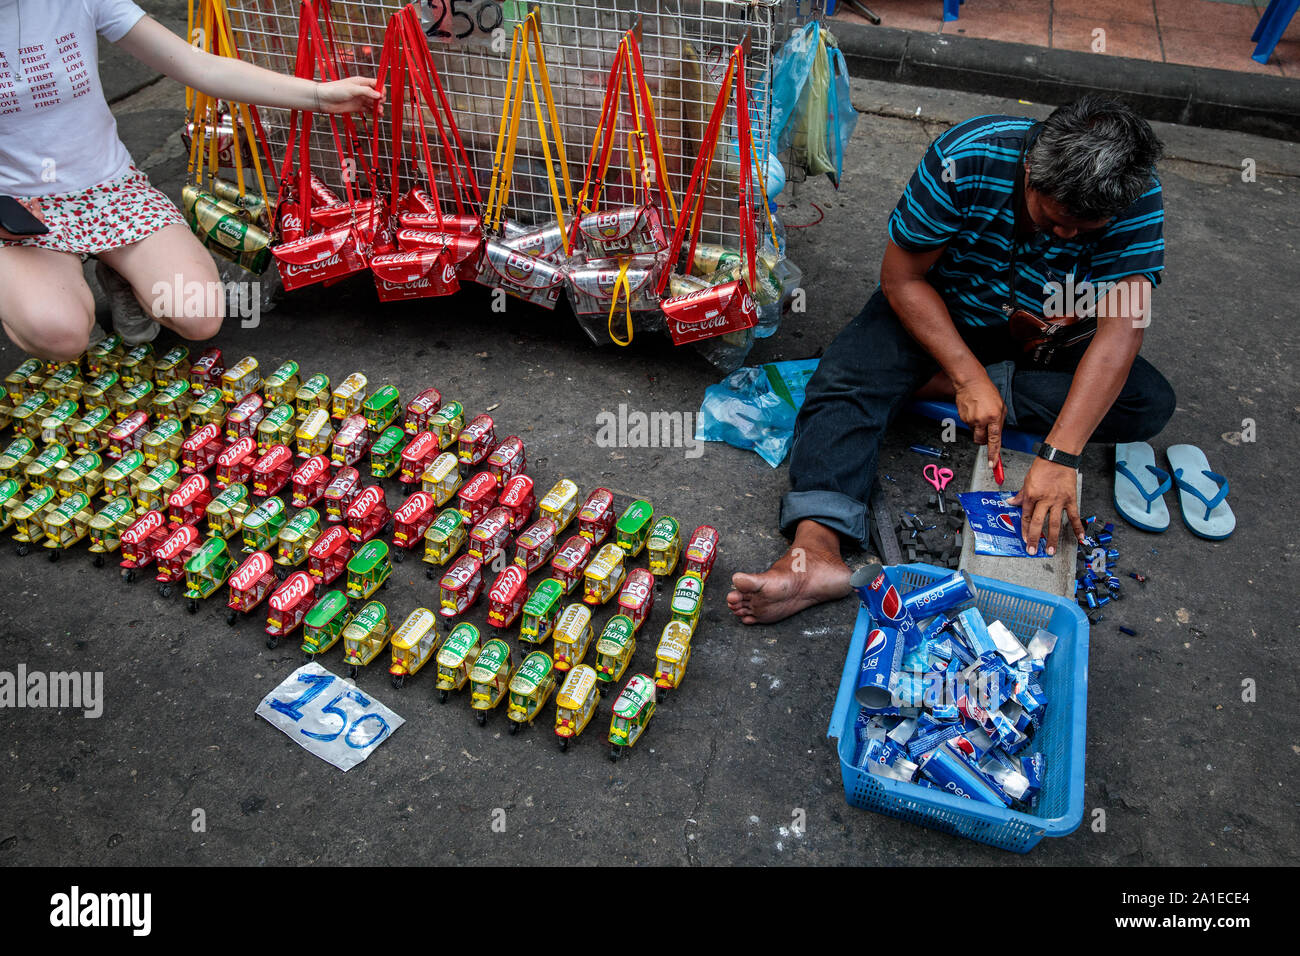 BANGKOK, THAILAND: A street vendor sits on the ground as he makes Tuk Tuk models out of soft drink cans on Khao San Road in Bangkok, Thailand on August 22nd, 2019. Bangkok's bustling Khao San Road - a strip famous among tourists for its budget hostels, street food and market stalls - is set for a £1.28M face lift in October this year.   For many backpackers Khao San is the starting point for their travels across Southeast Asia. It is a place to meet fellow travellers, dine out on pad thai served from street carts, sip cocktails from small brightly-coloured buckets or perhaps get an ill-advised Stock Photo